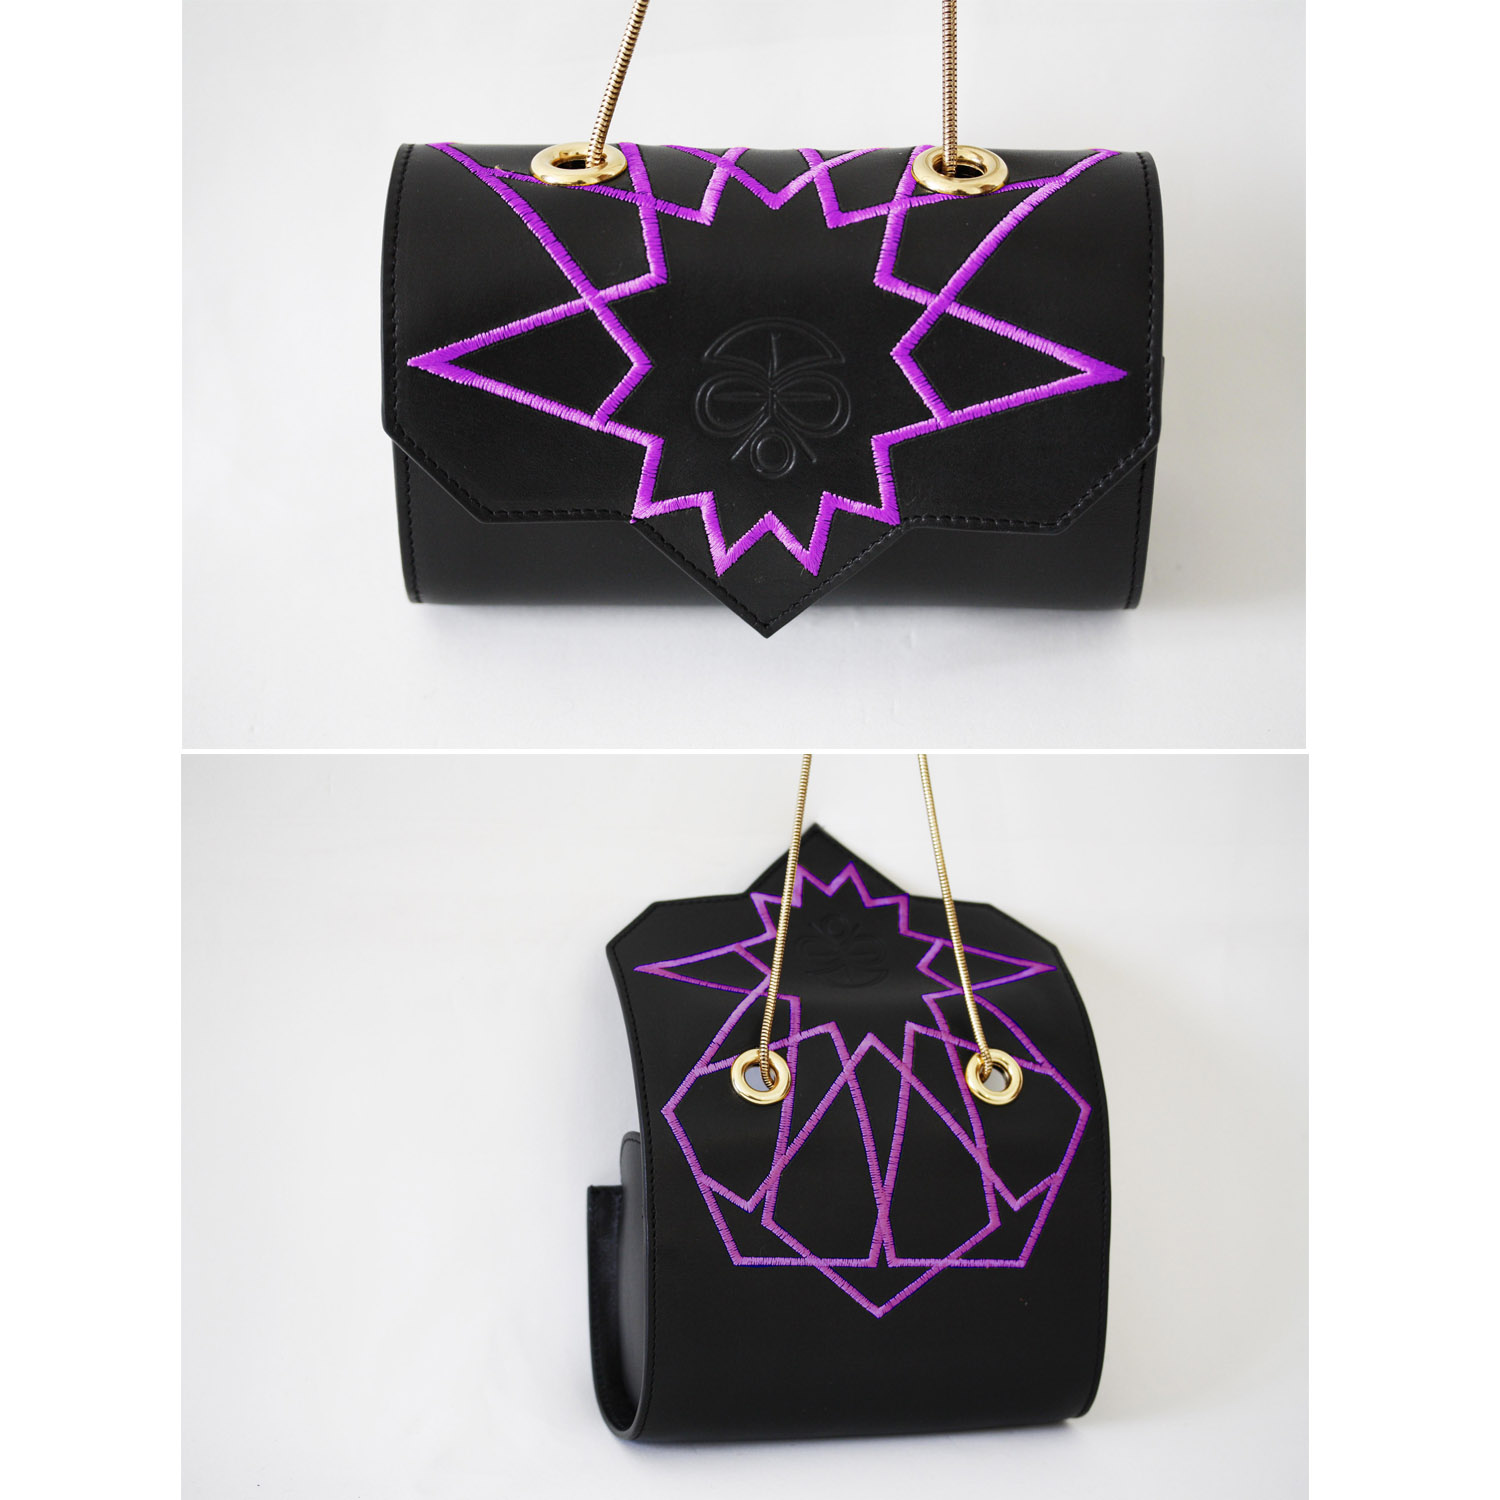 LOULOUC   Black with purple embroideries